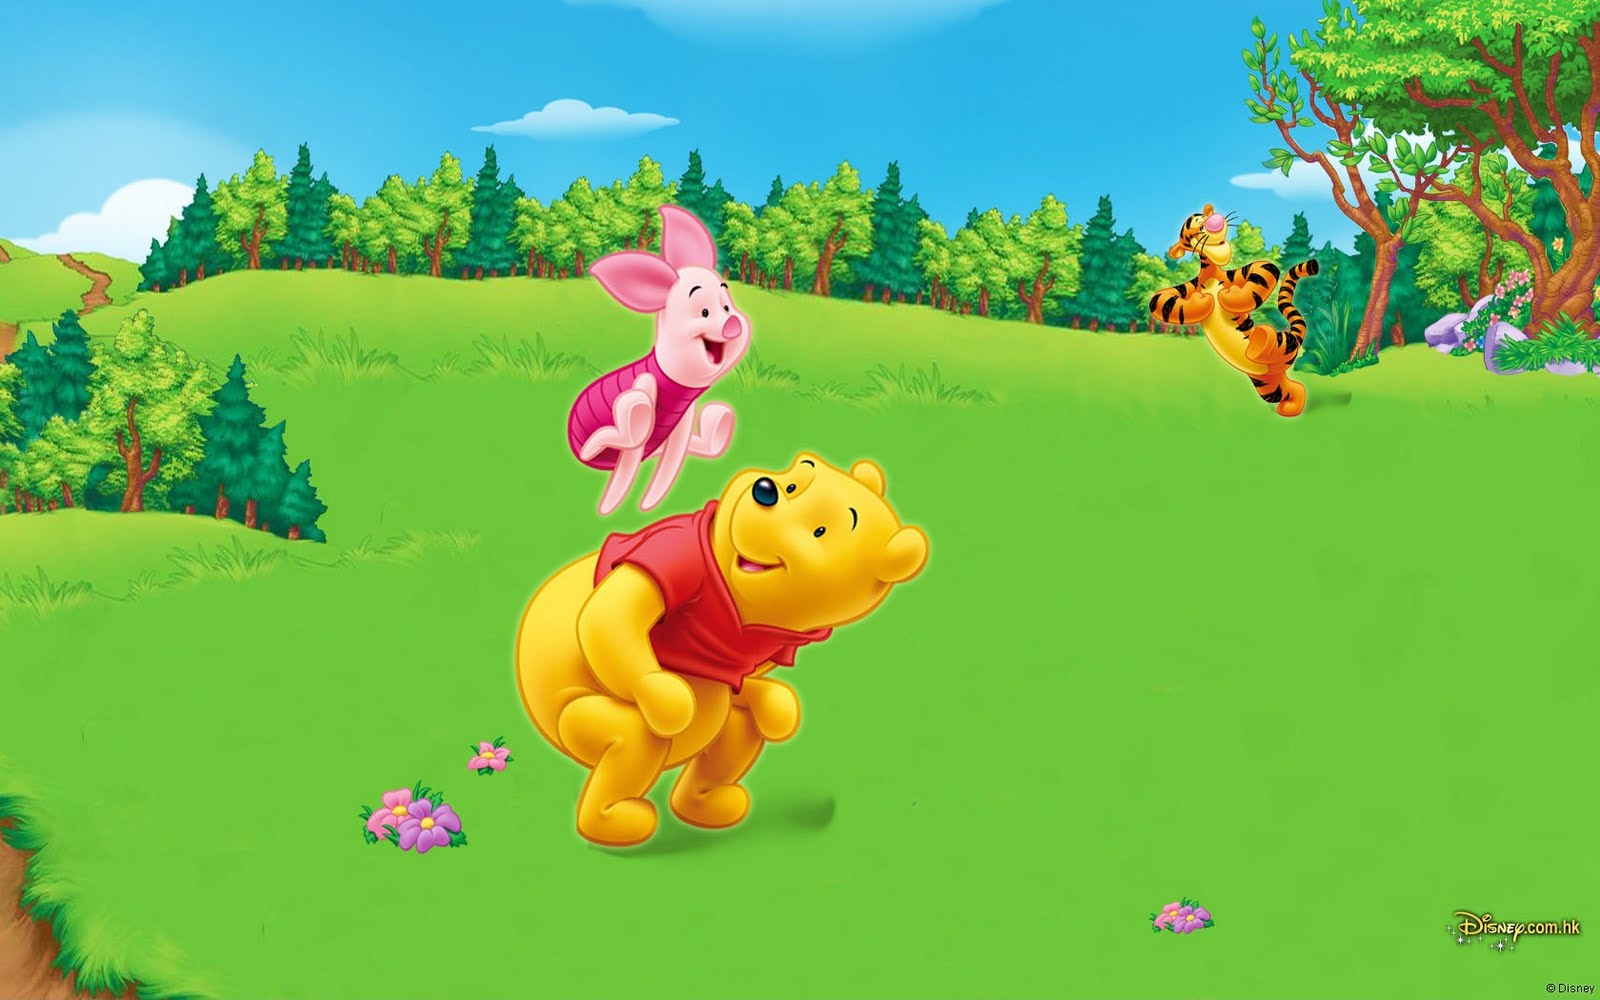 Winnie the pooh wallpapers wallpapersafari wallpapers photo art winnie the pooh wallpaper hd wallpaper 1600x1000 voltagebd Image collections